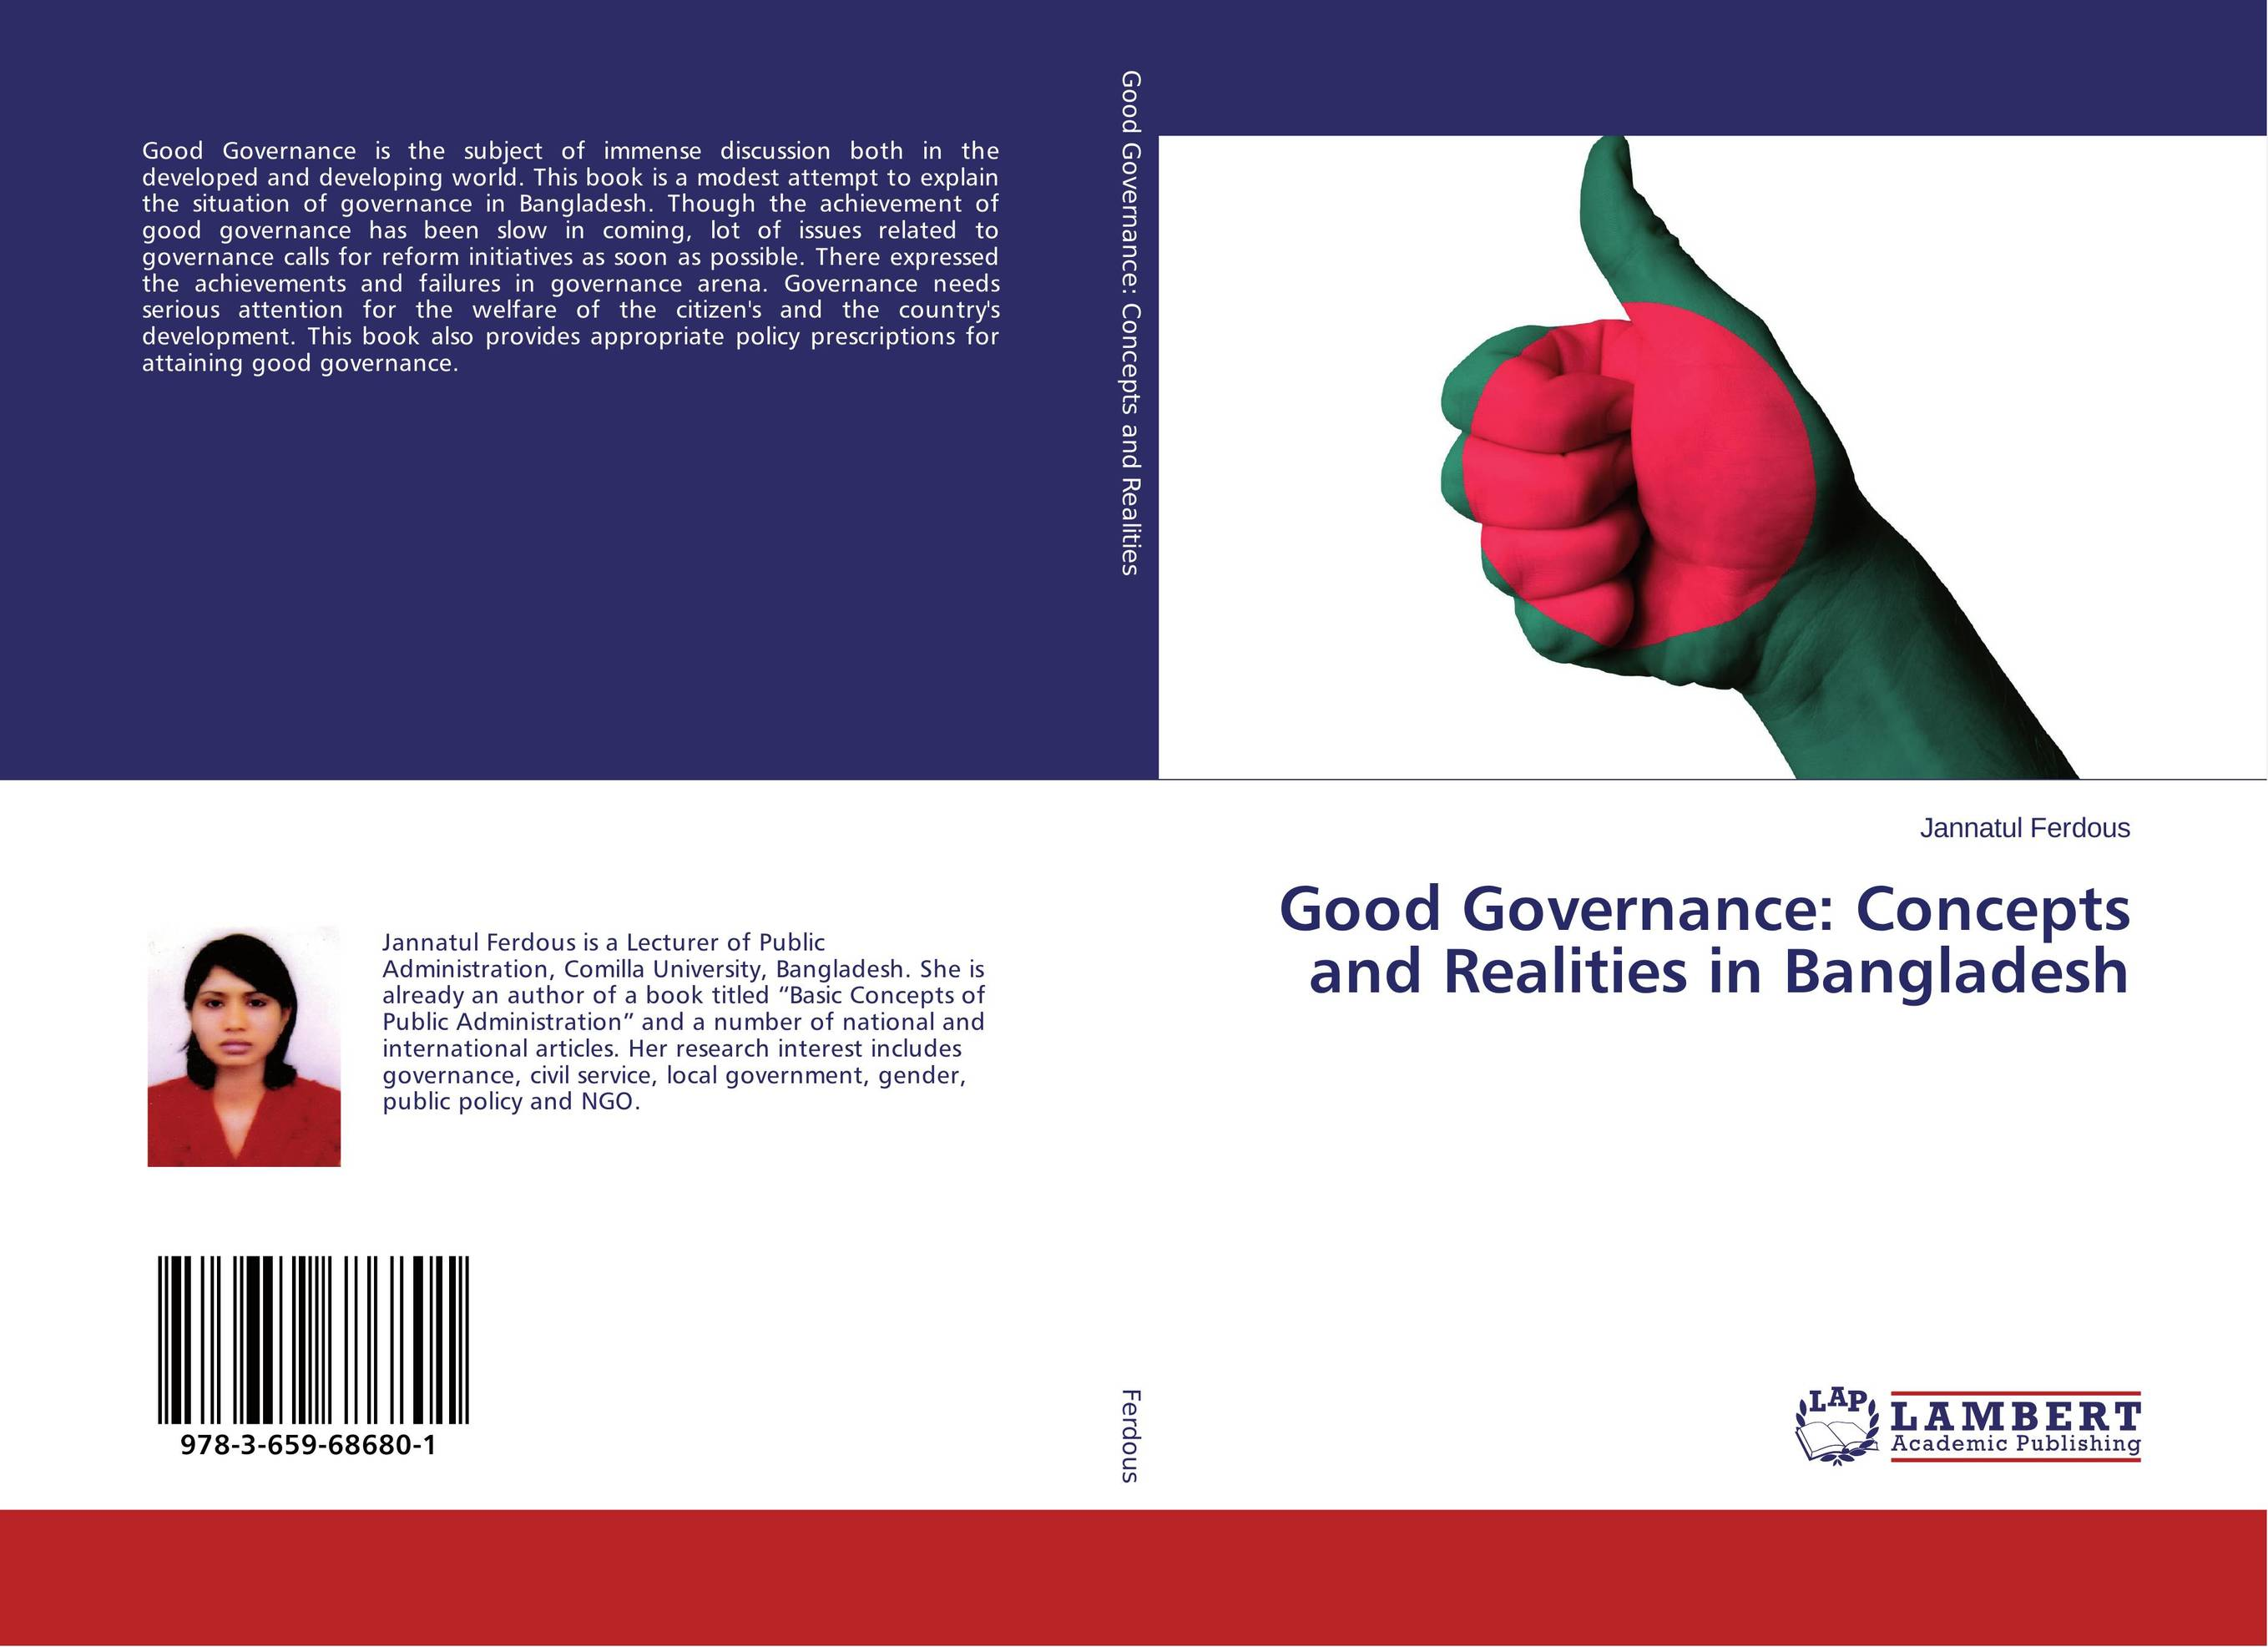 Good Governance: Concepts and Realities in Bangladesh купить